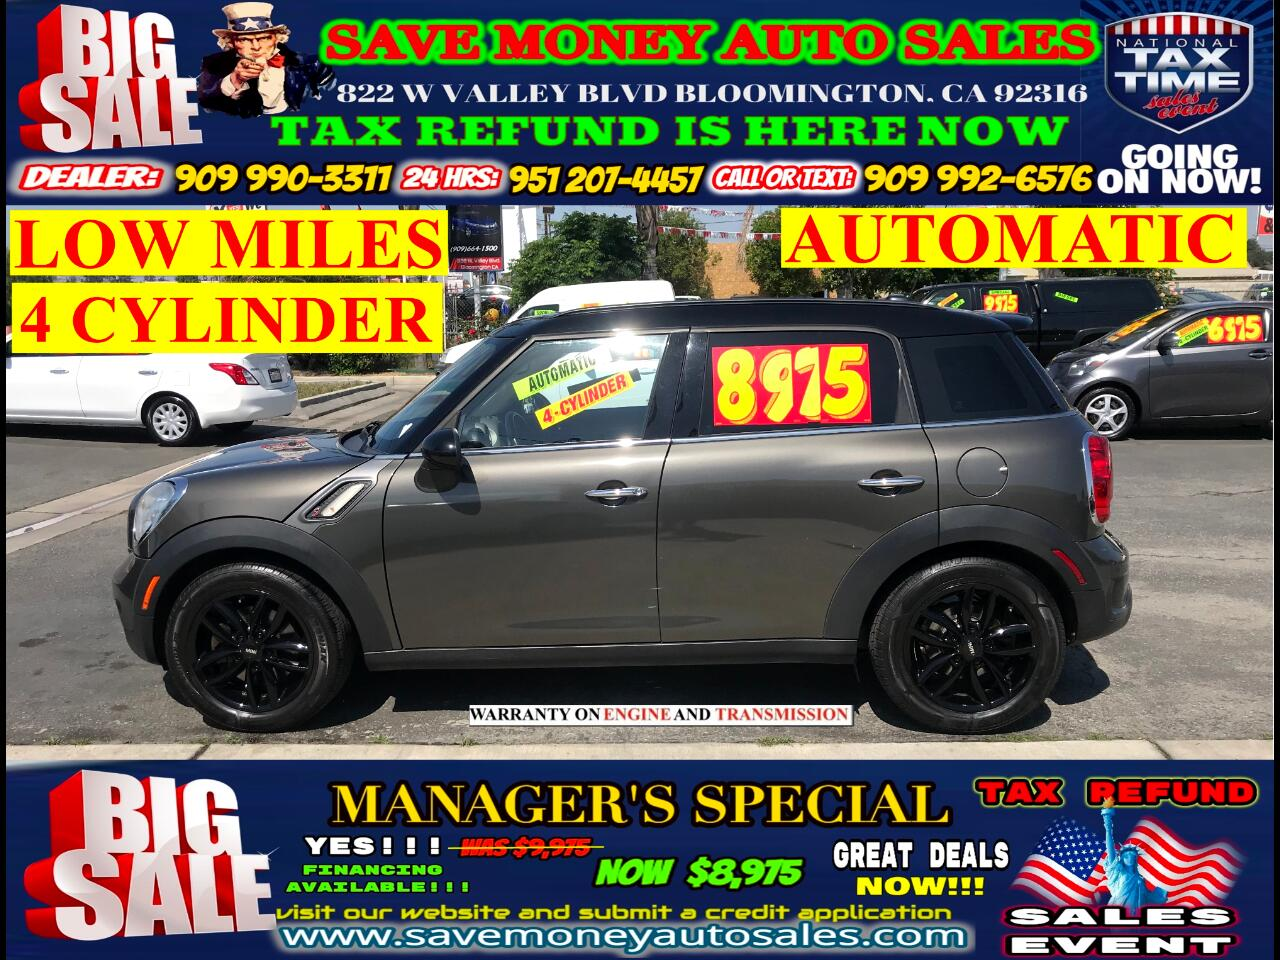 2011 MINI Countryman S> 4-CYLINDER> LOW MILES> EXTRA CLEAN